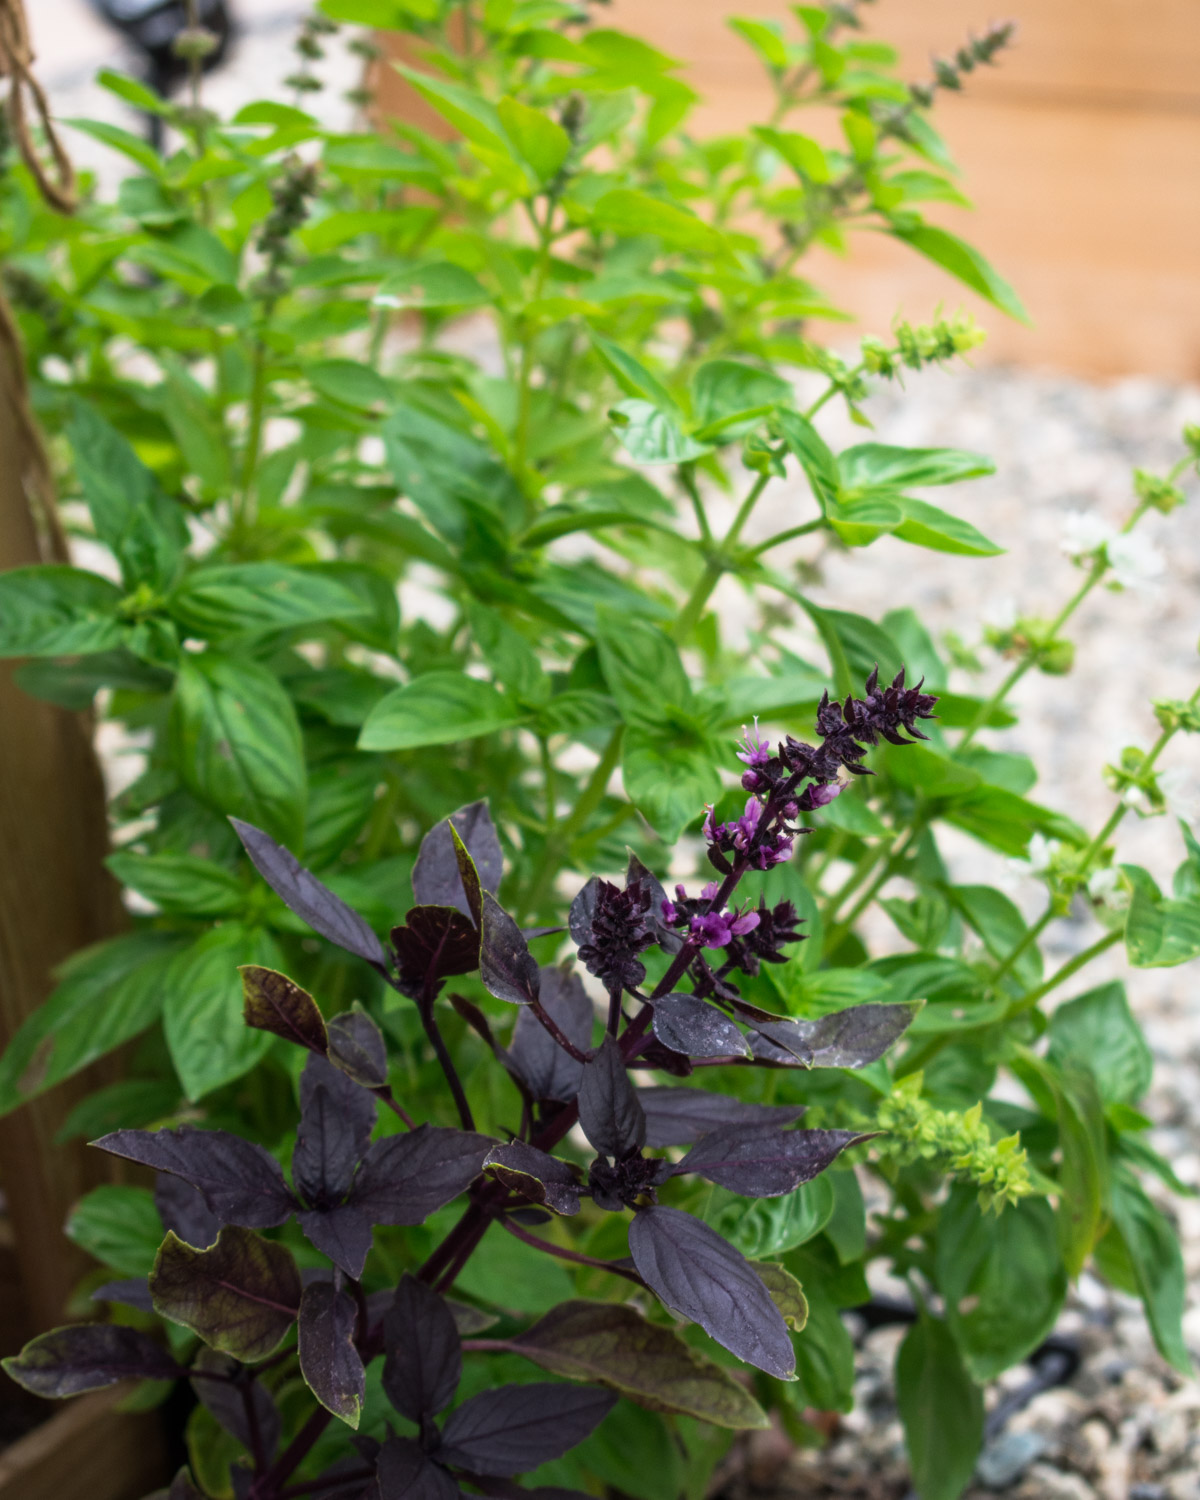 Genovese and purple basil growing in the garden.